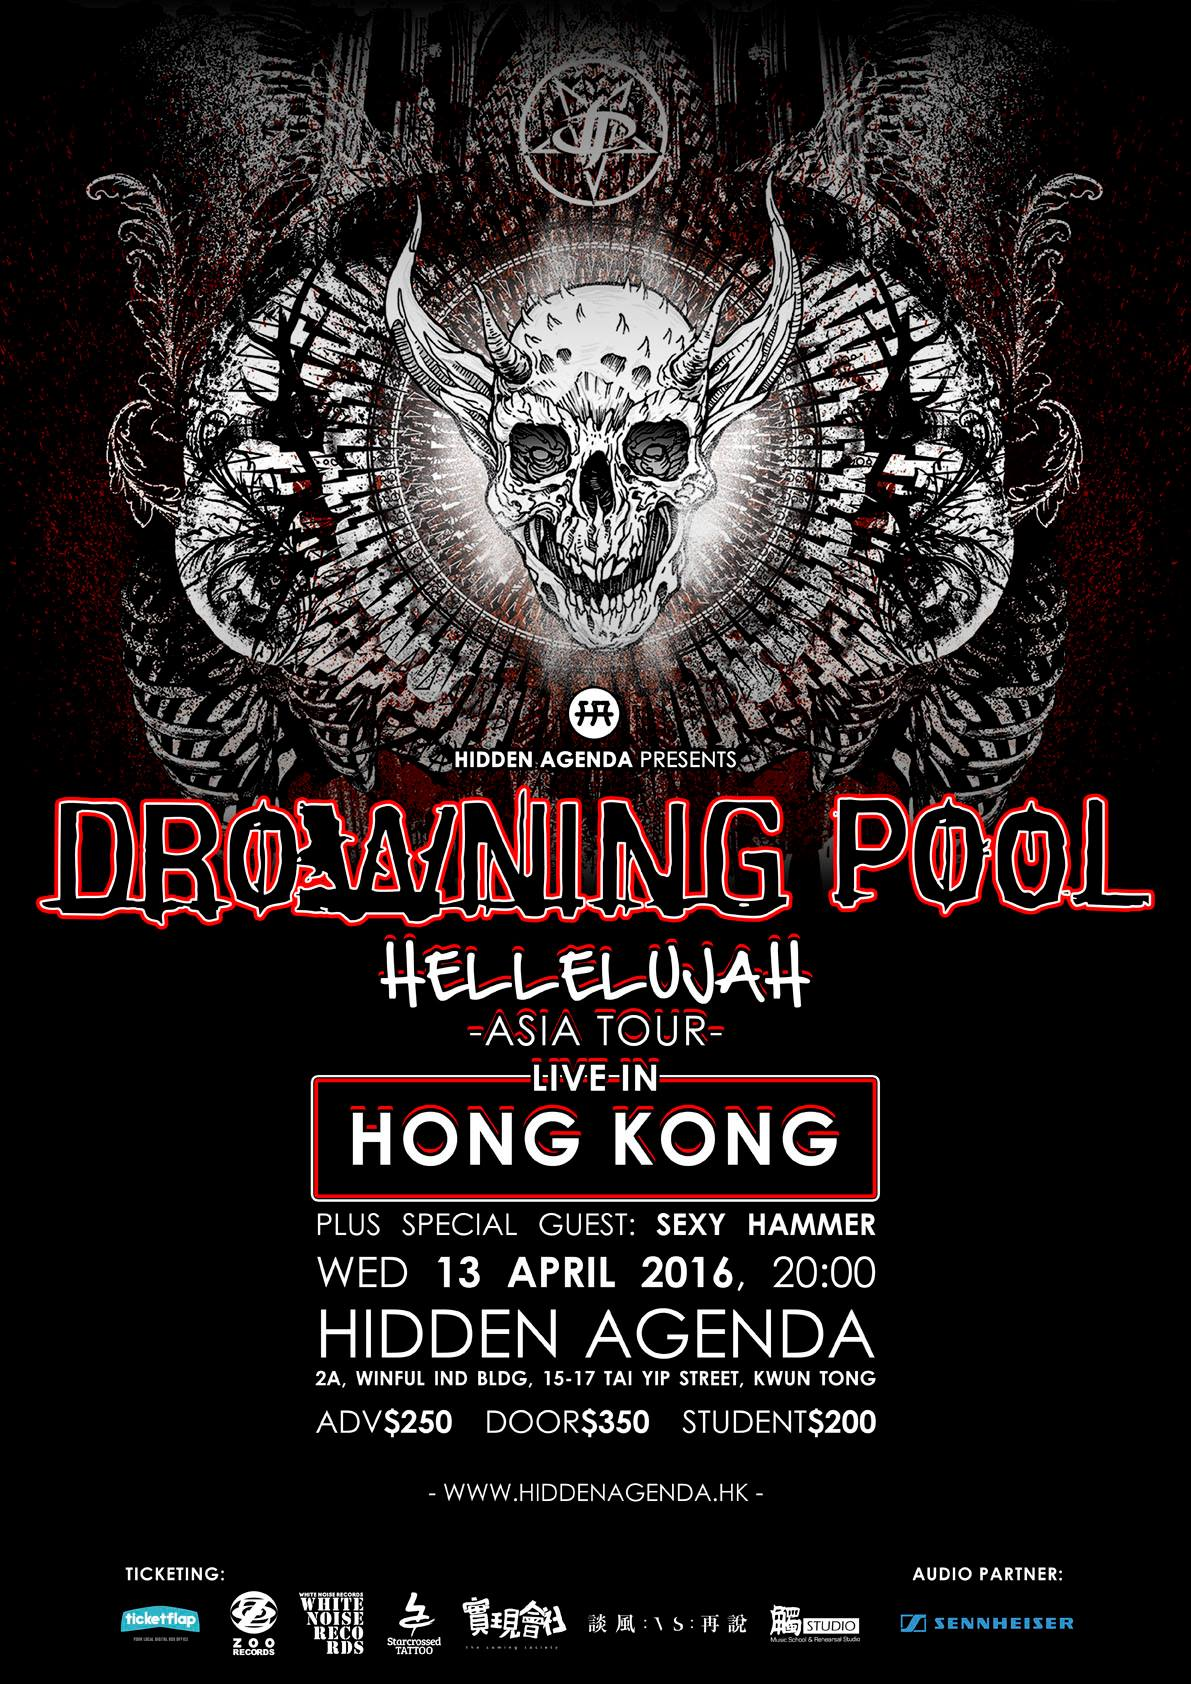 Drowning Pool Hellelujah Asia Tour - Live In Hong Kong Tickets, Apr